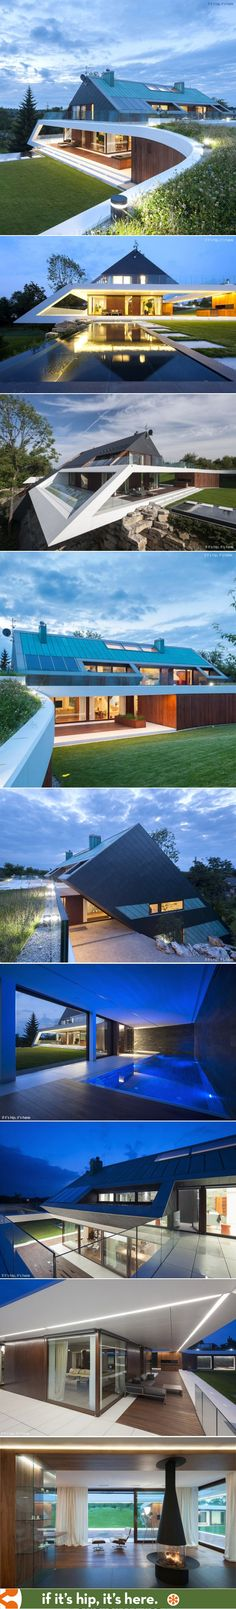 Angular made awesome in Krakow's Edge House | http://www.ifitshipitshere.com/angular-made-awesome-krakows-edge-house-mobius-architecture/